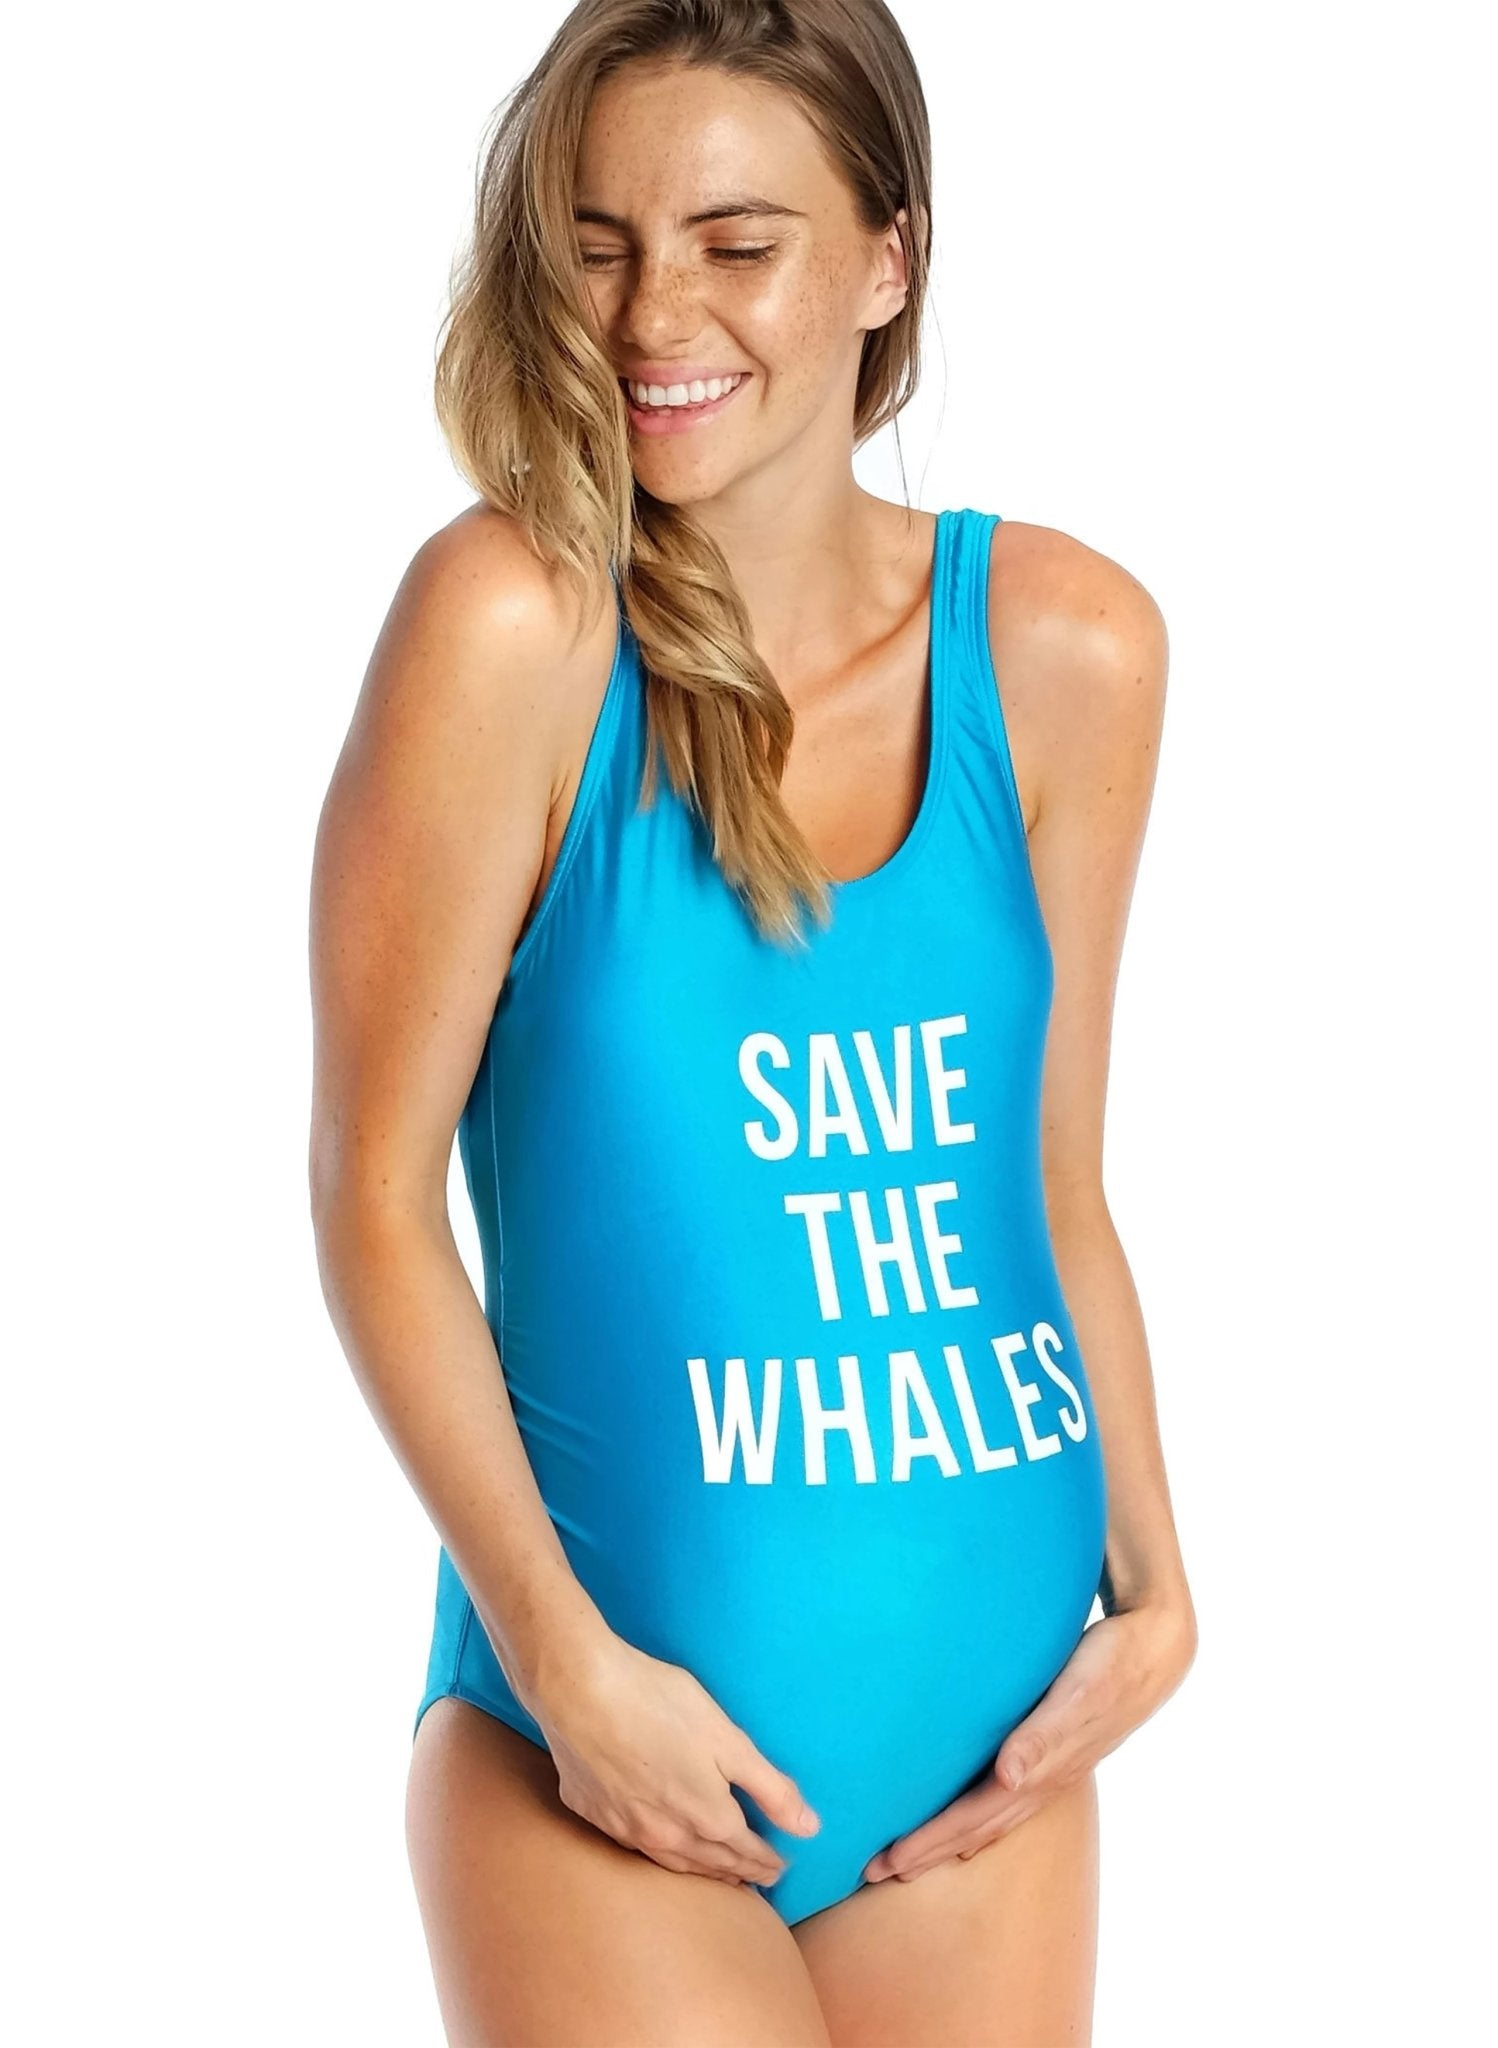 Save the Whales Maternity Swimwear - Mums and Bumps